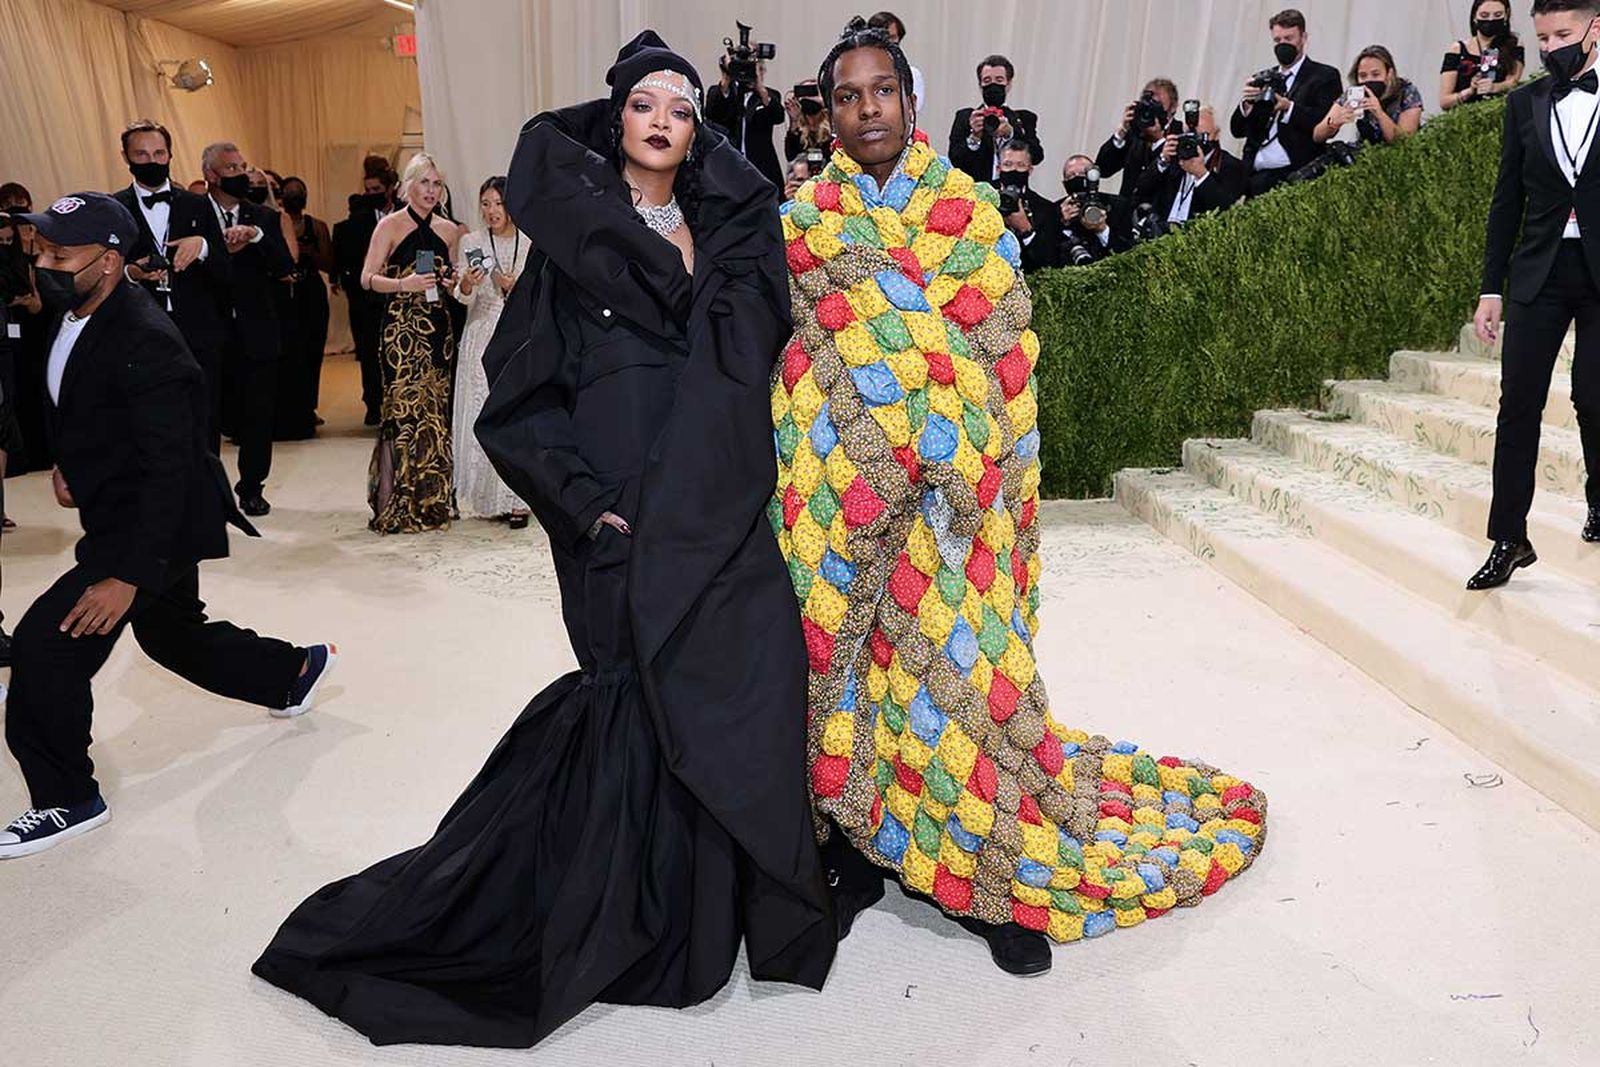 met gala 2021 celebrity style looks best outfits red carpet asap rocky rihanna